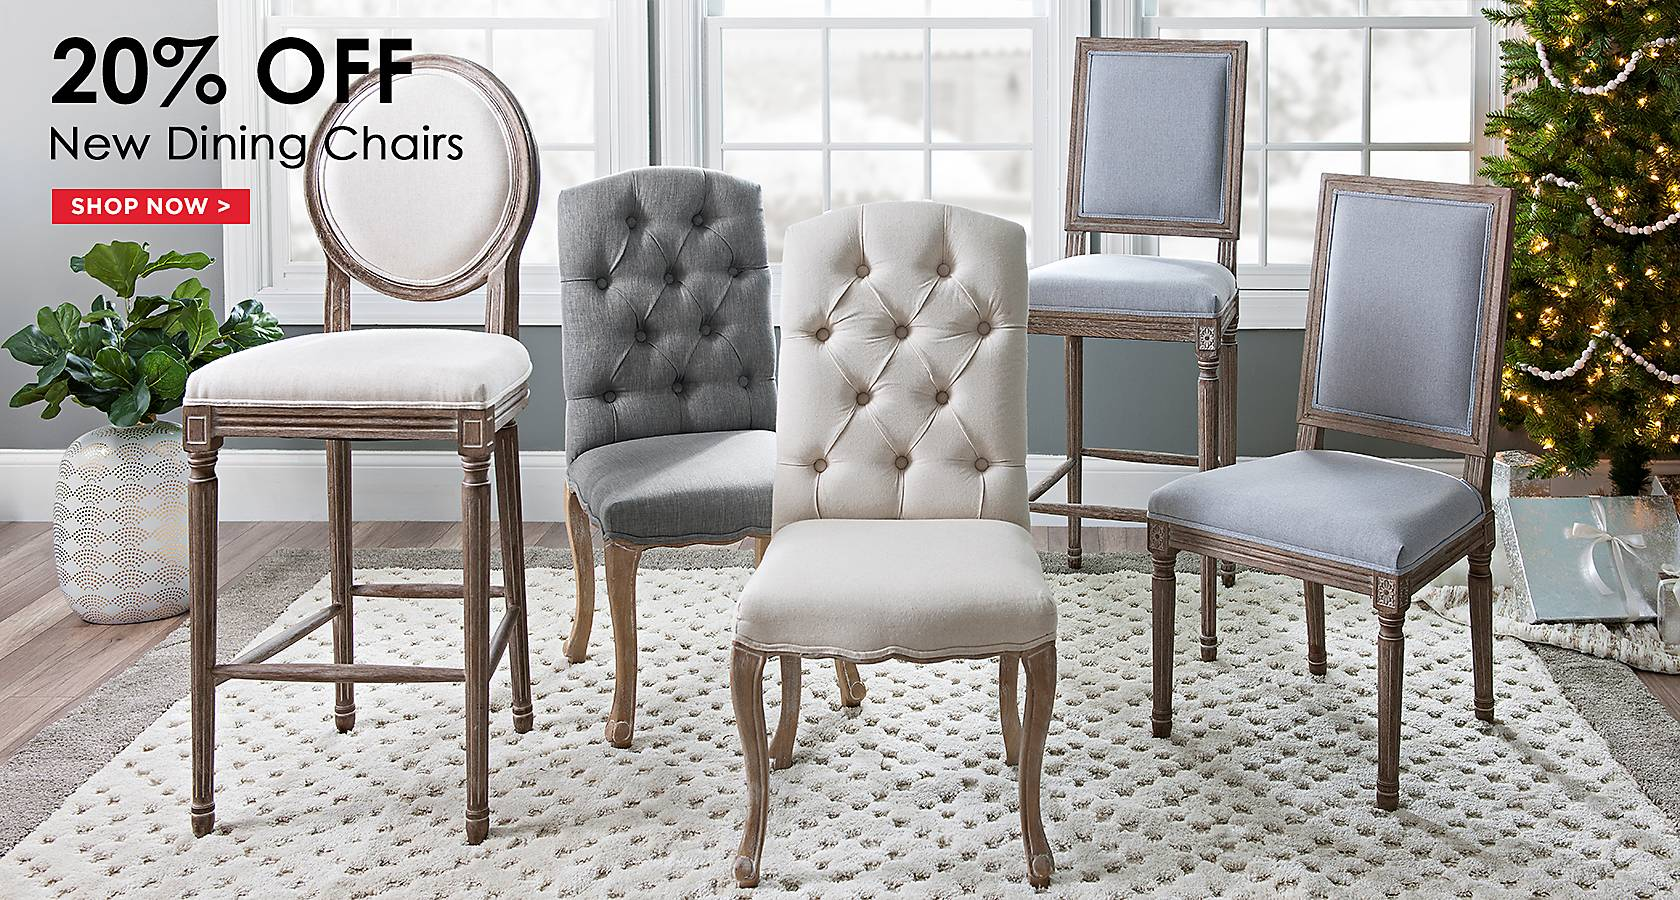 20% Off New Dining Chairs - Shop Now